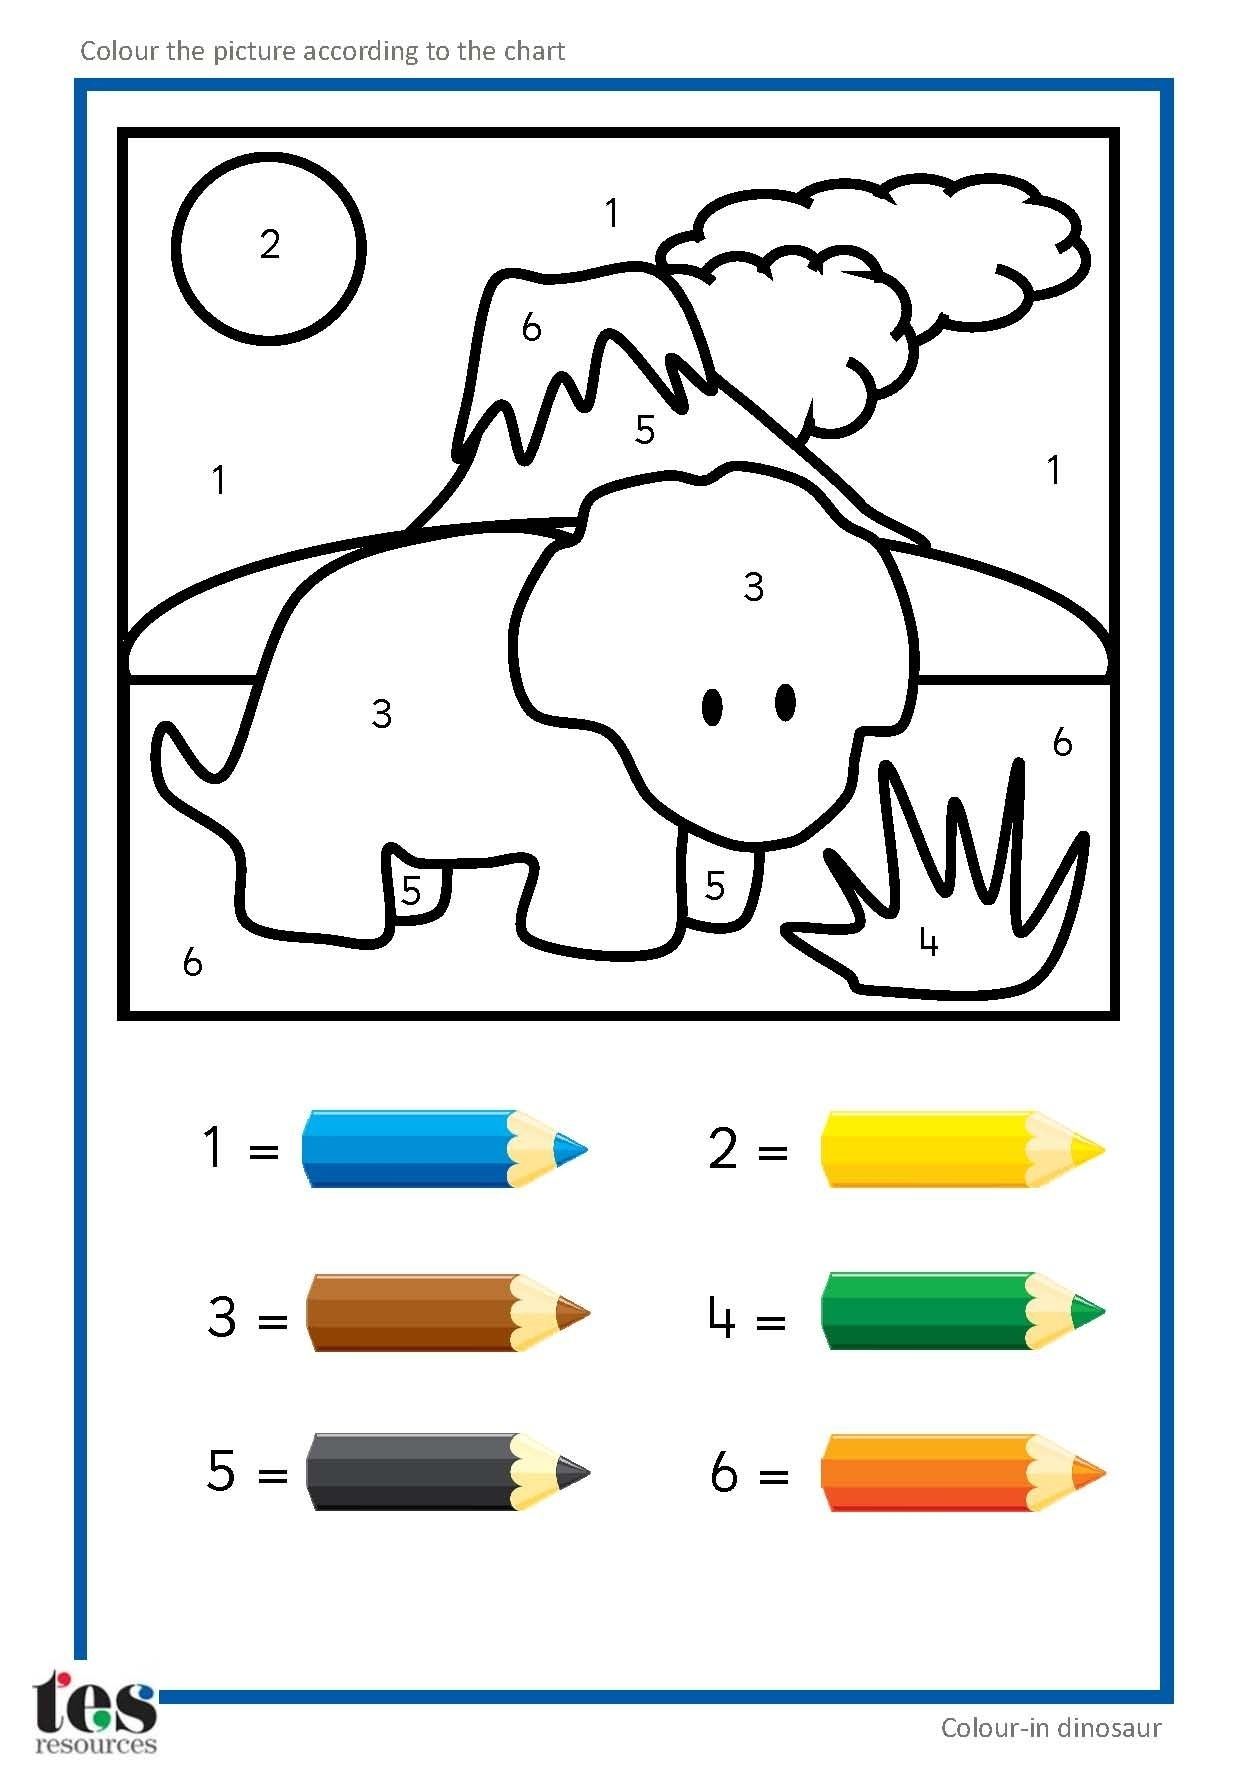 Simple Colournumbers Dinosaur Pictures With Clear Visuals. Each with regard to Colouring In Square Sheets For Year Three No Color